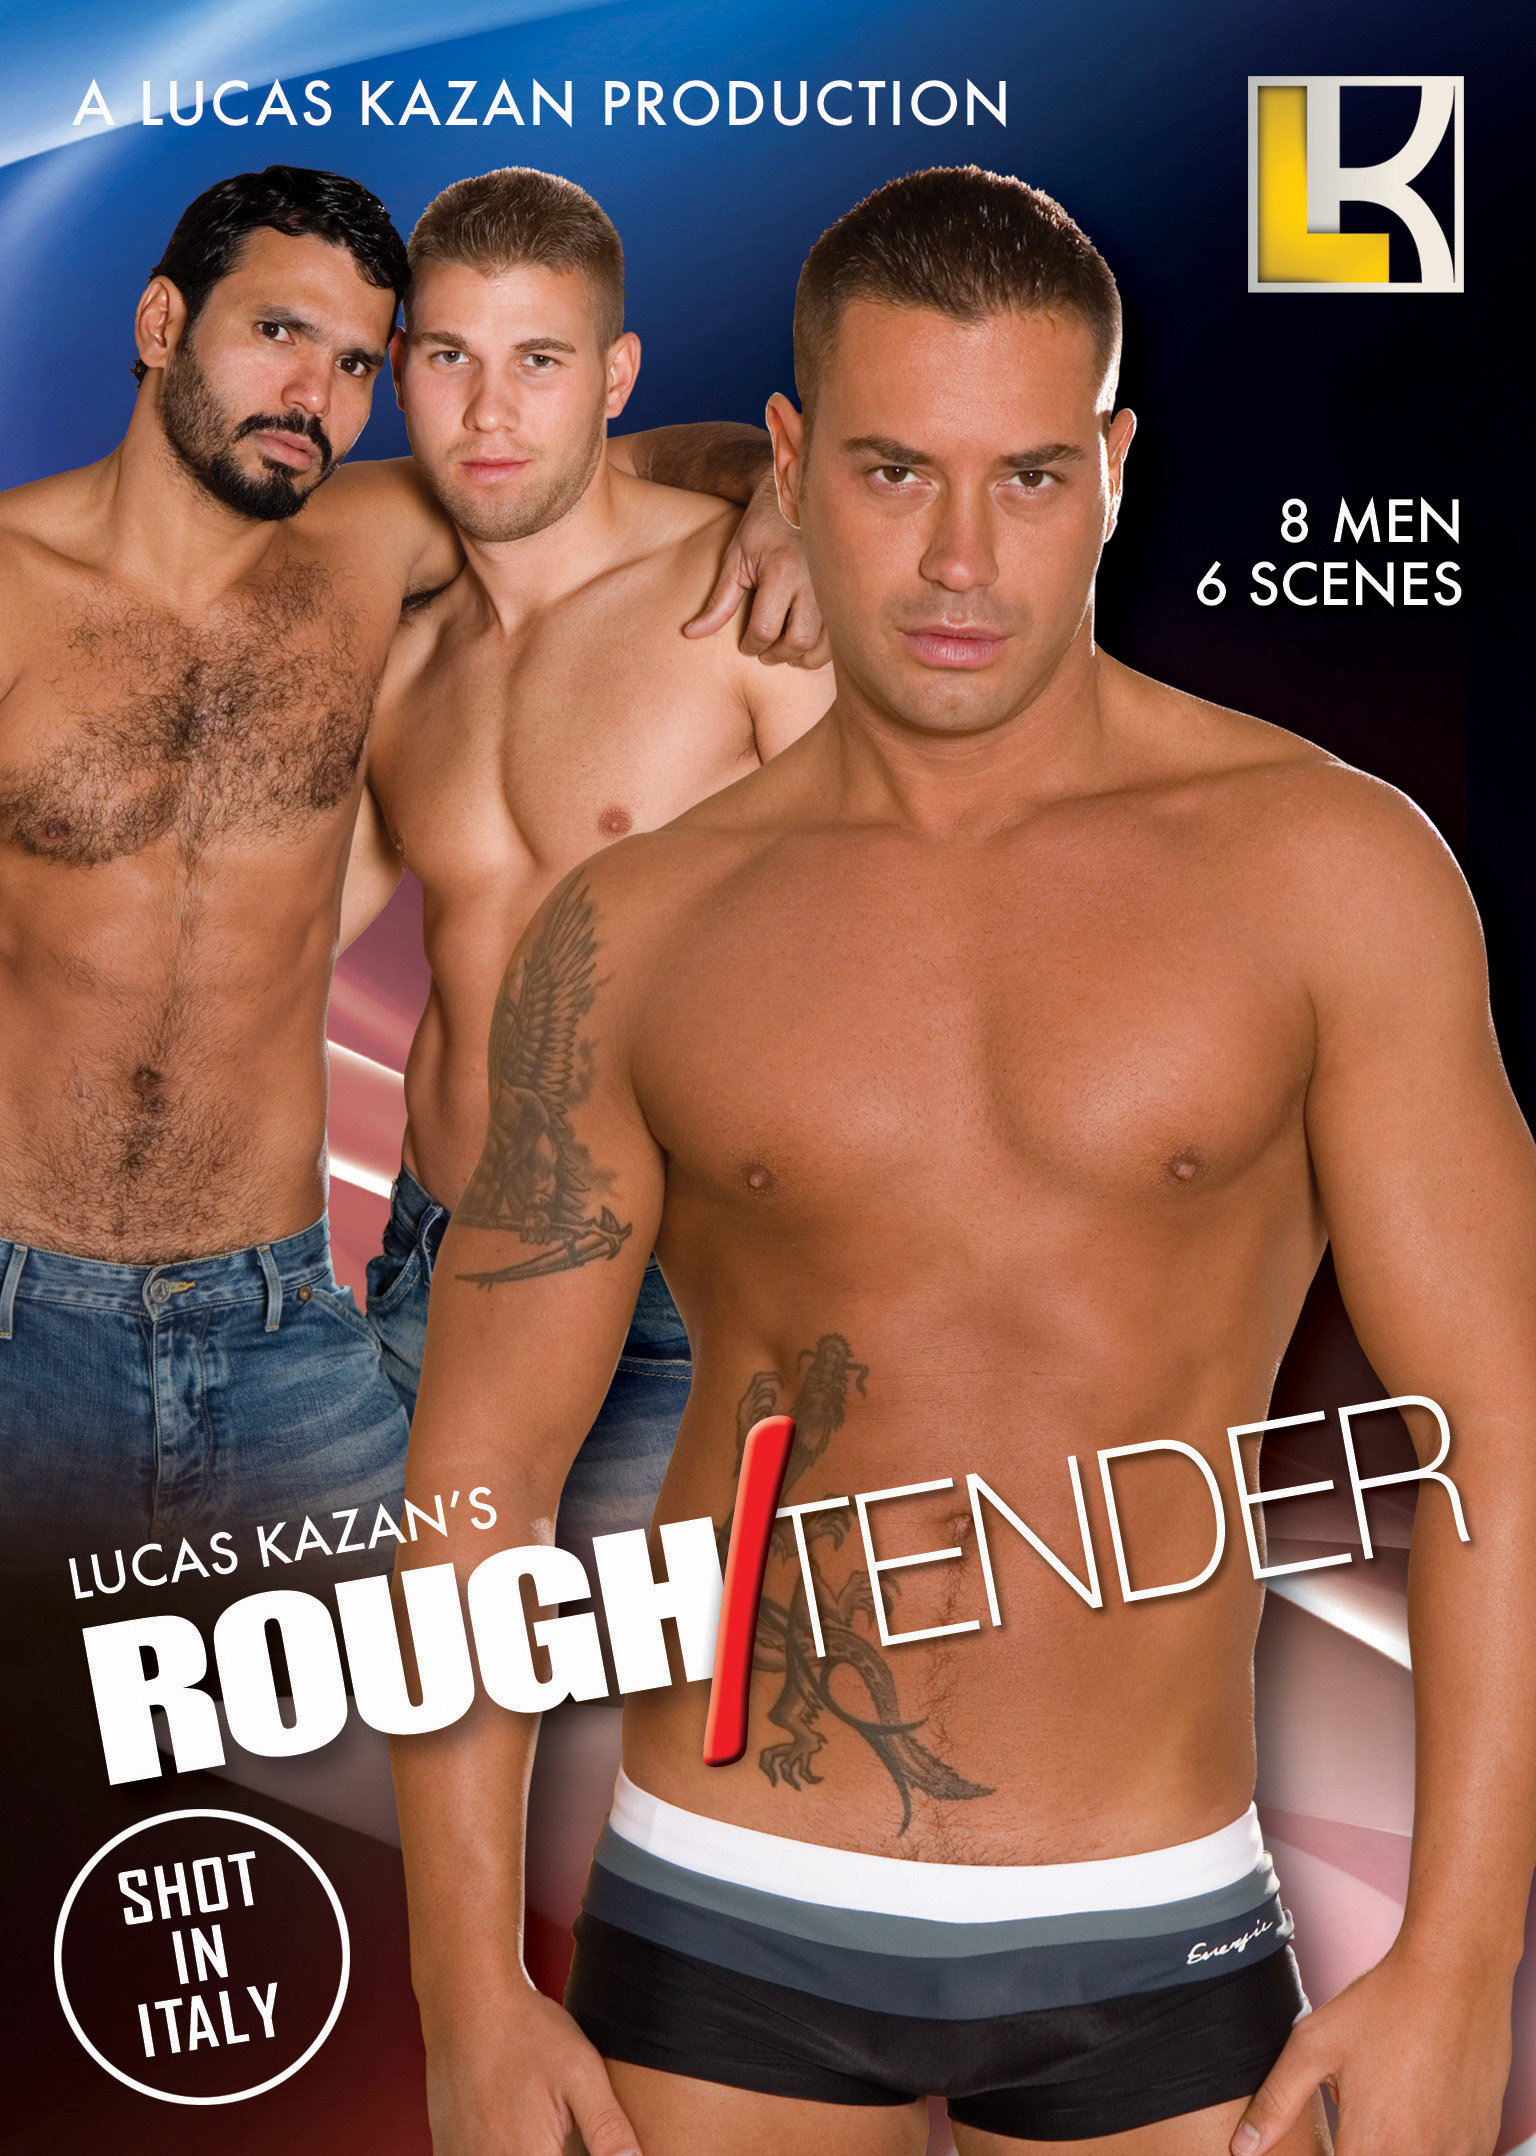 Rough / Tender